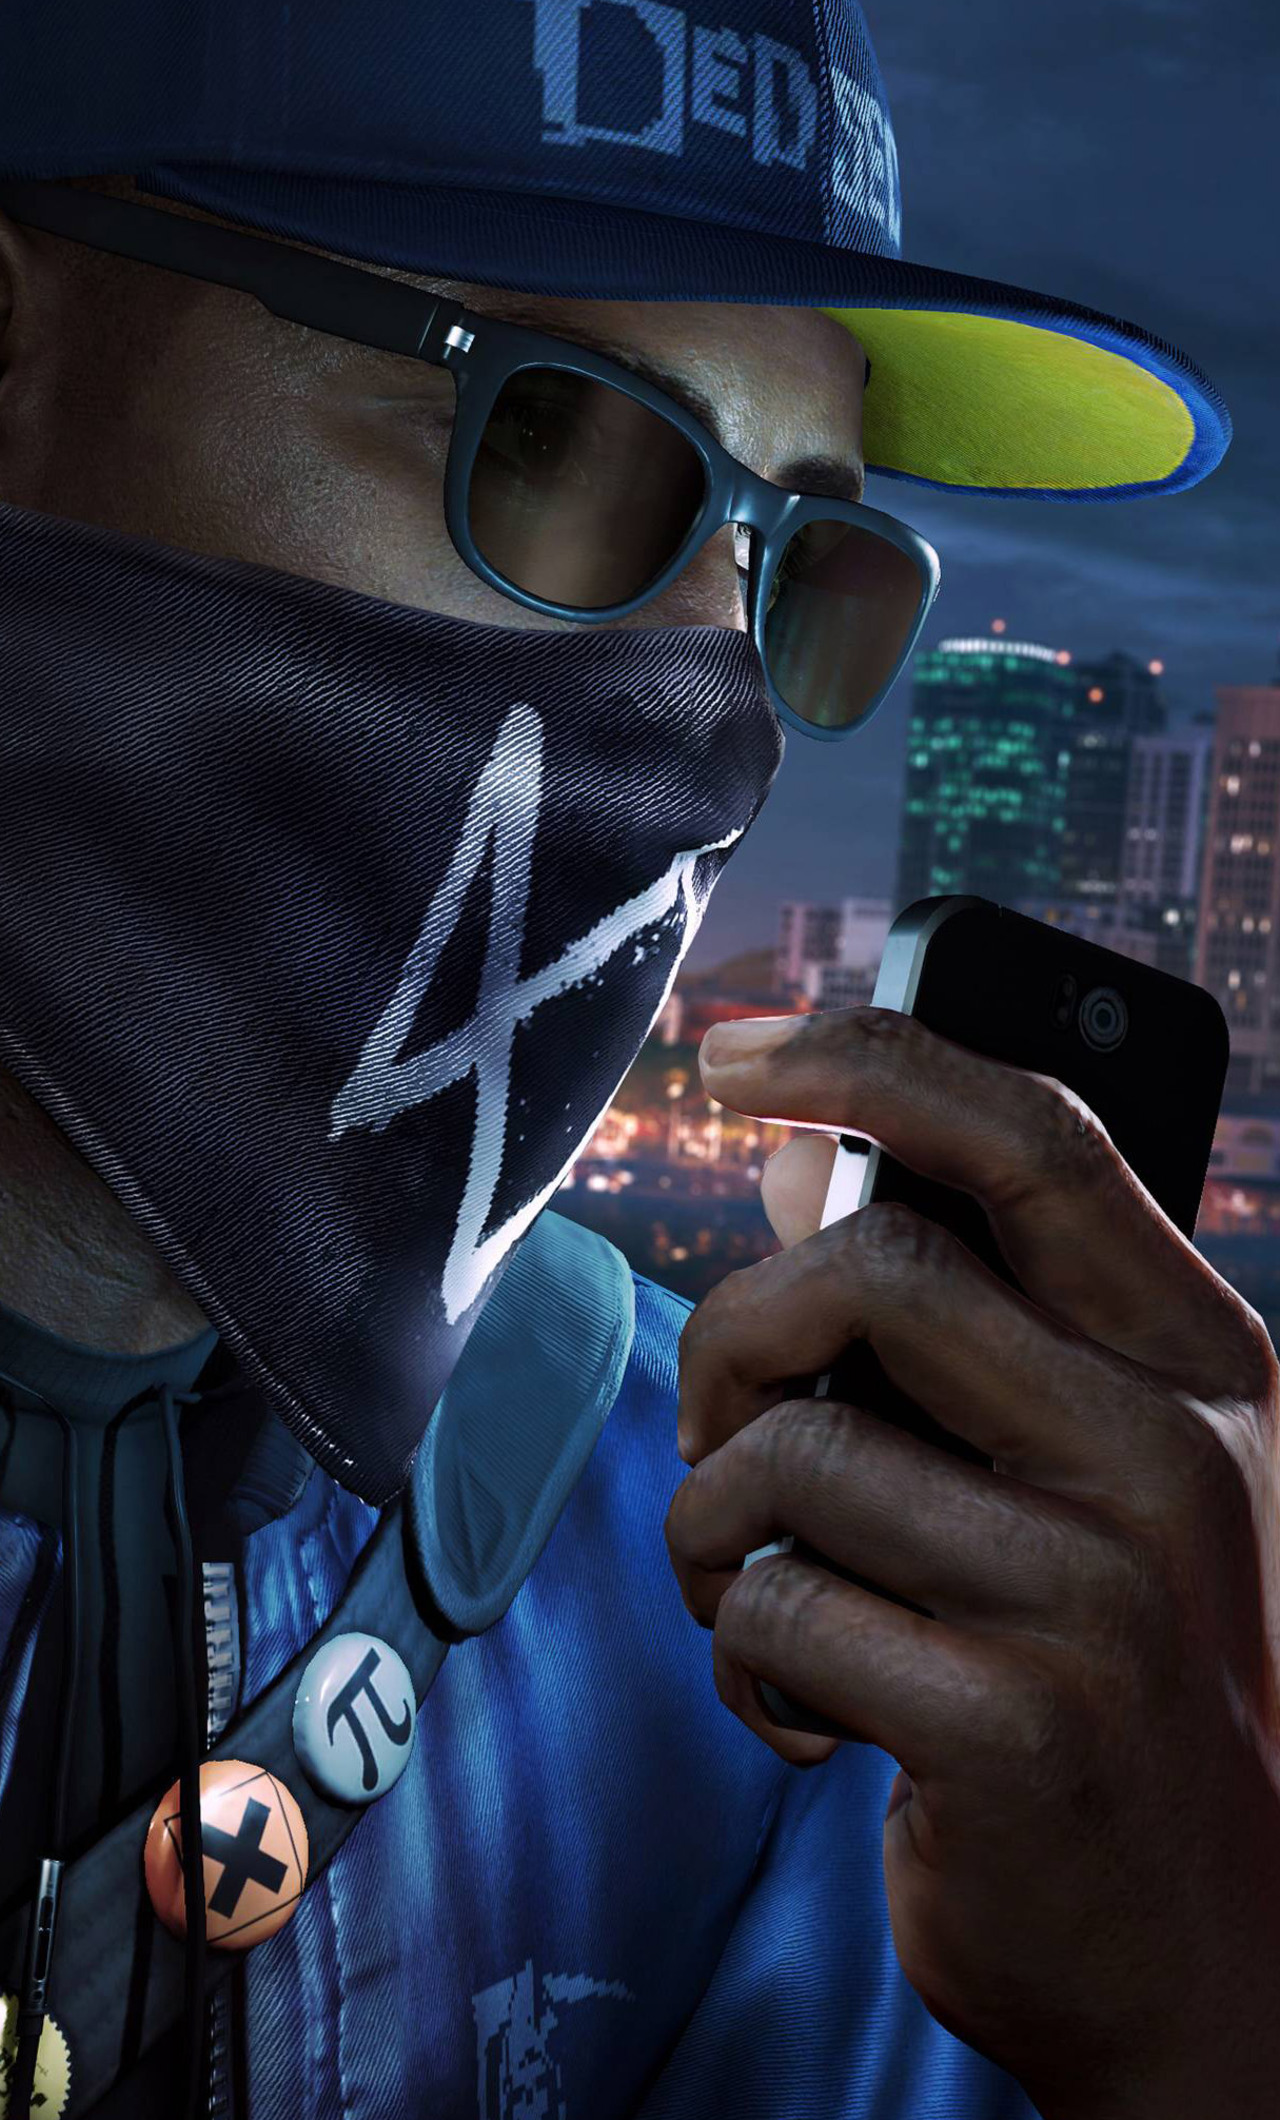 1280x2120 Watch Dogs 2 Ps4 Pro 4k Iphone 6 Hd 4k Wallpapers Images